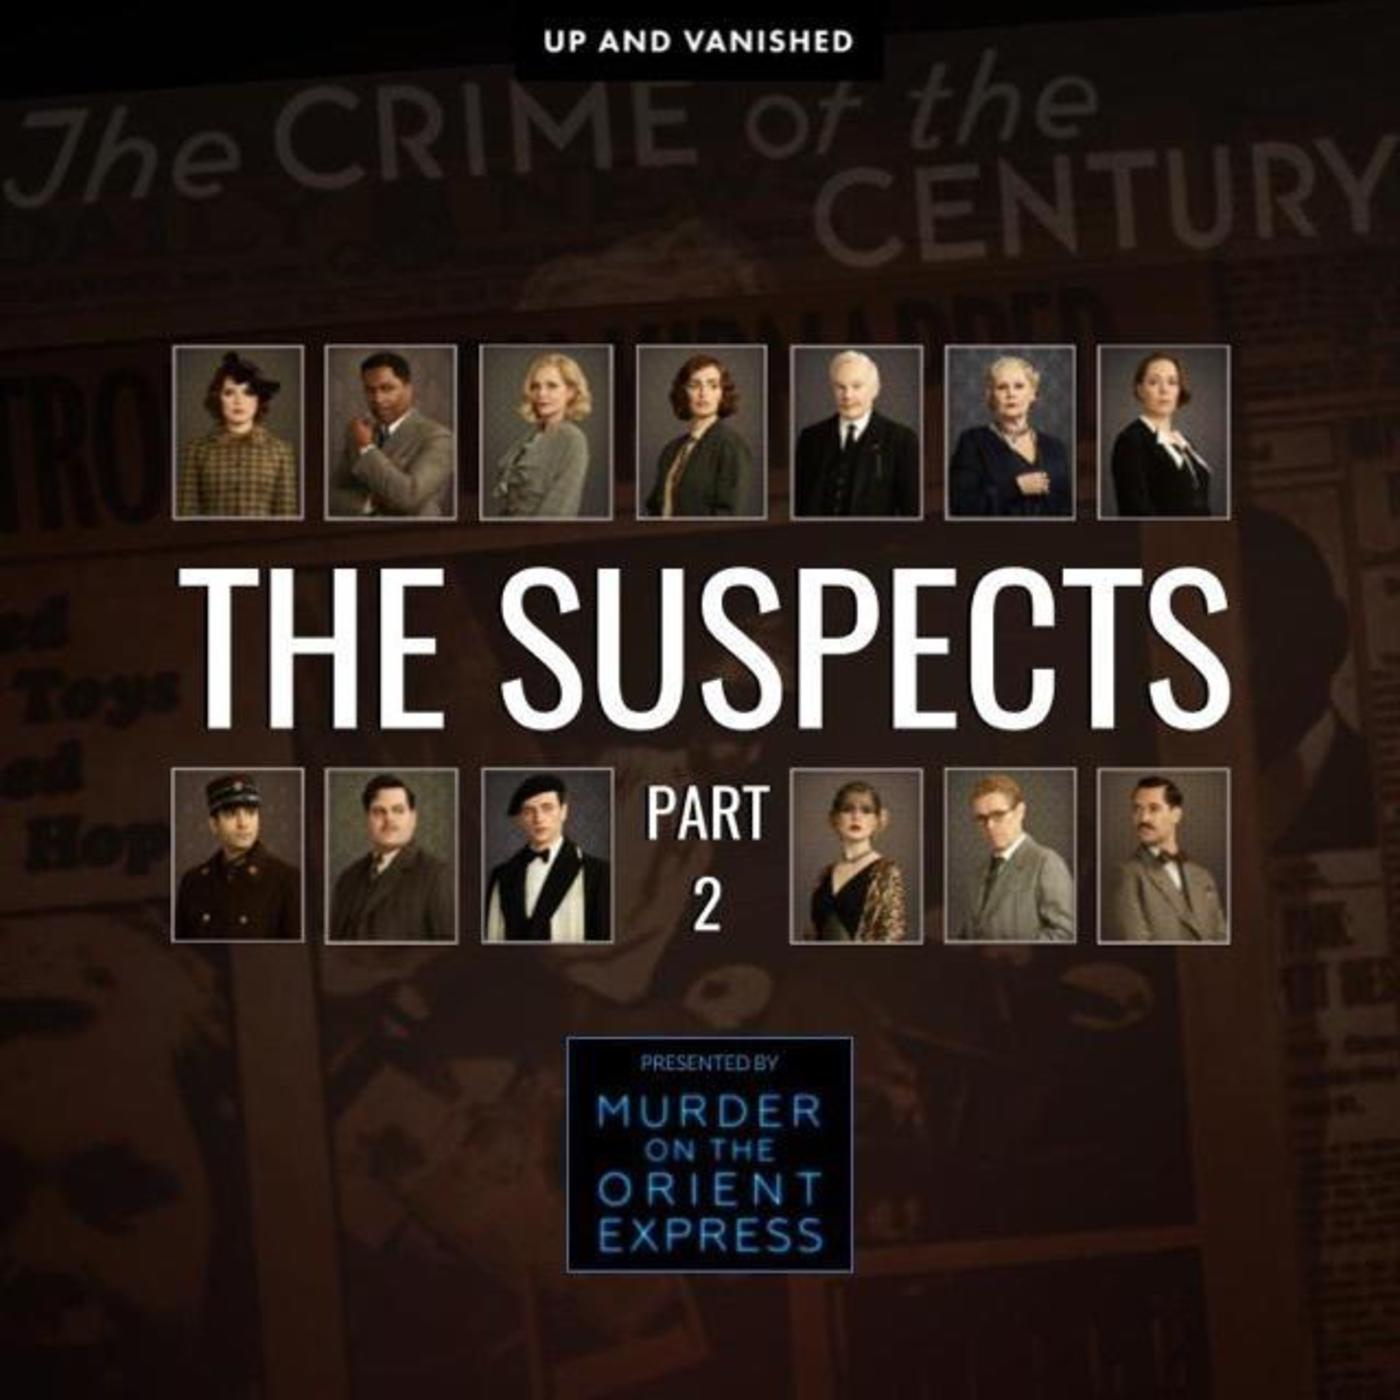 The Suspects : Part 2 - Presented by Up and Vanished and Murder On the Orient Express